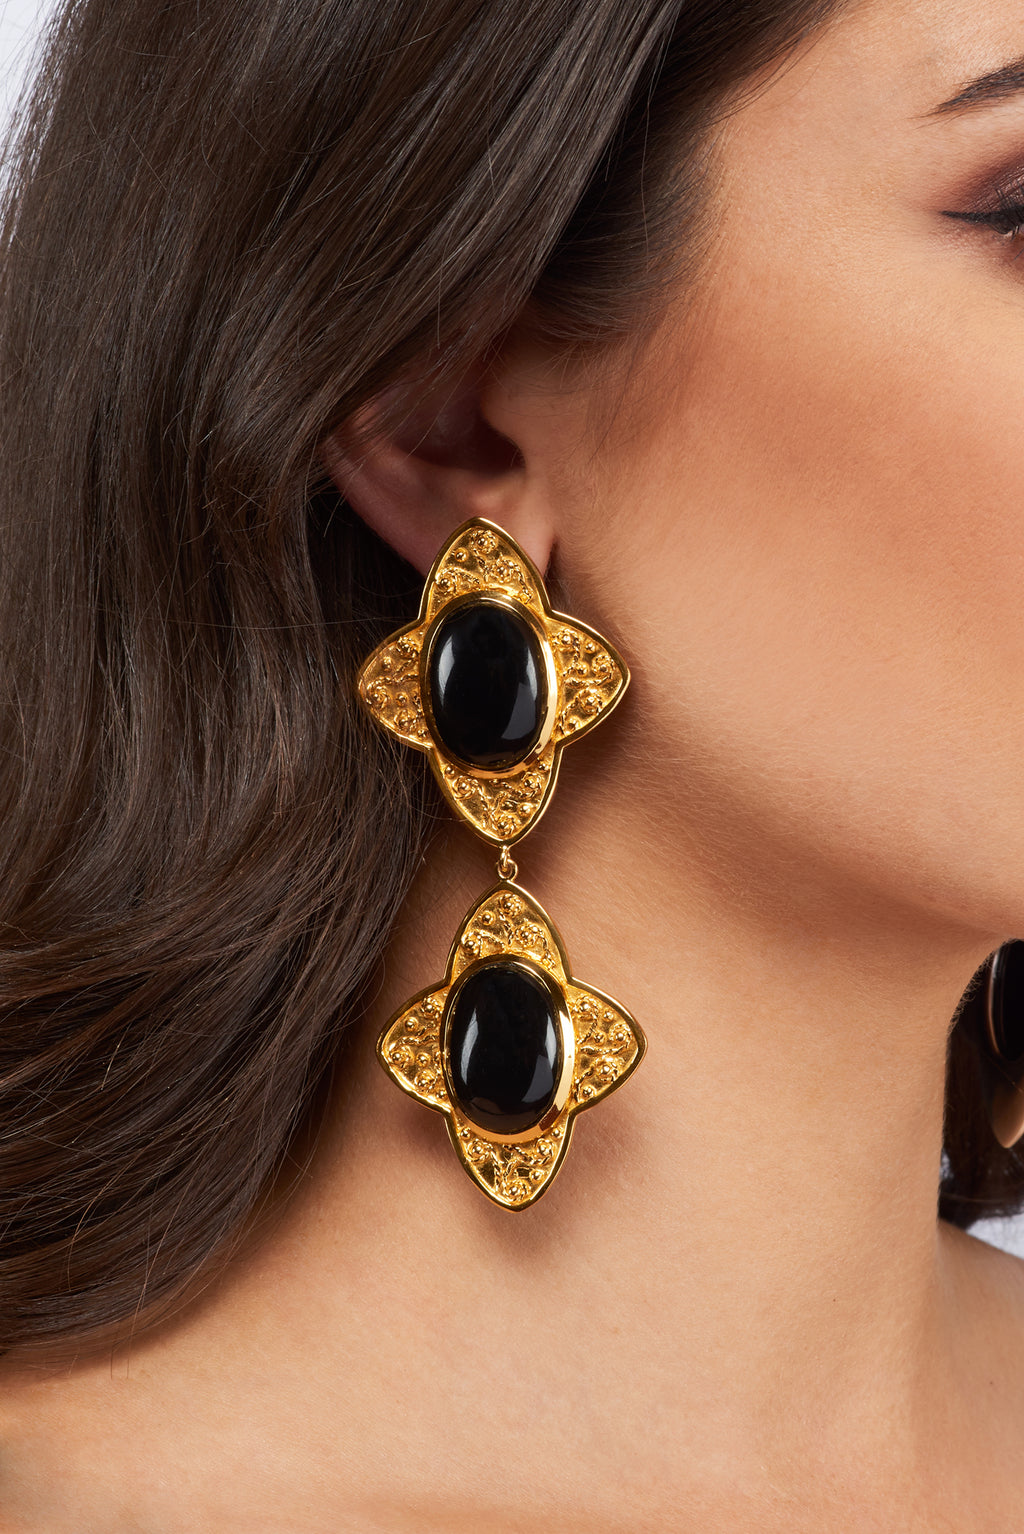 Carolina Earrings - 24k Gold - Black Onyx - Angelina Alvarez